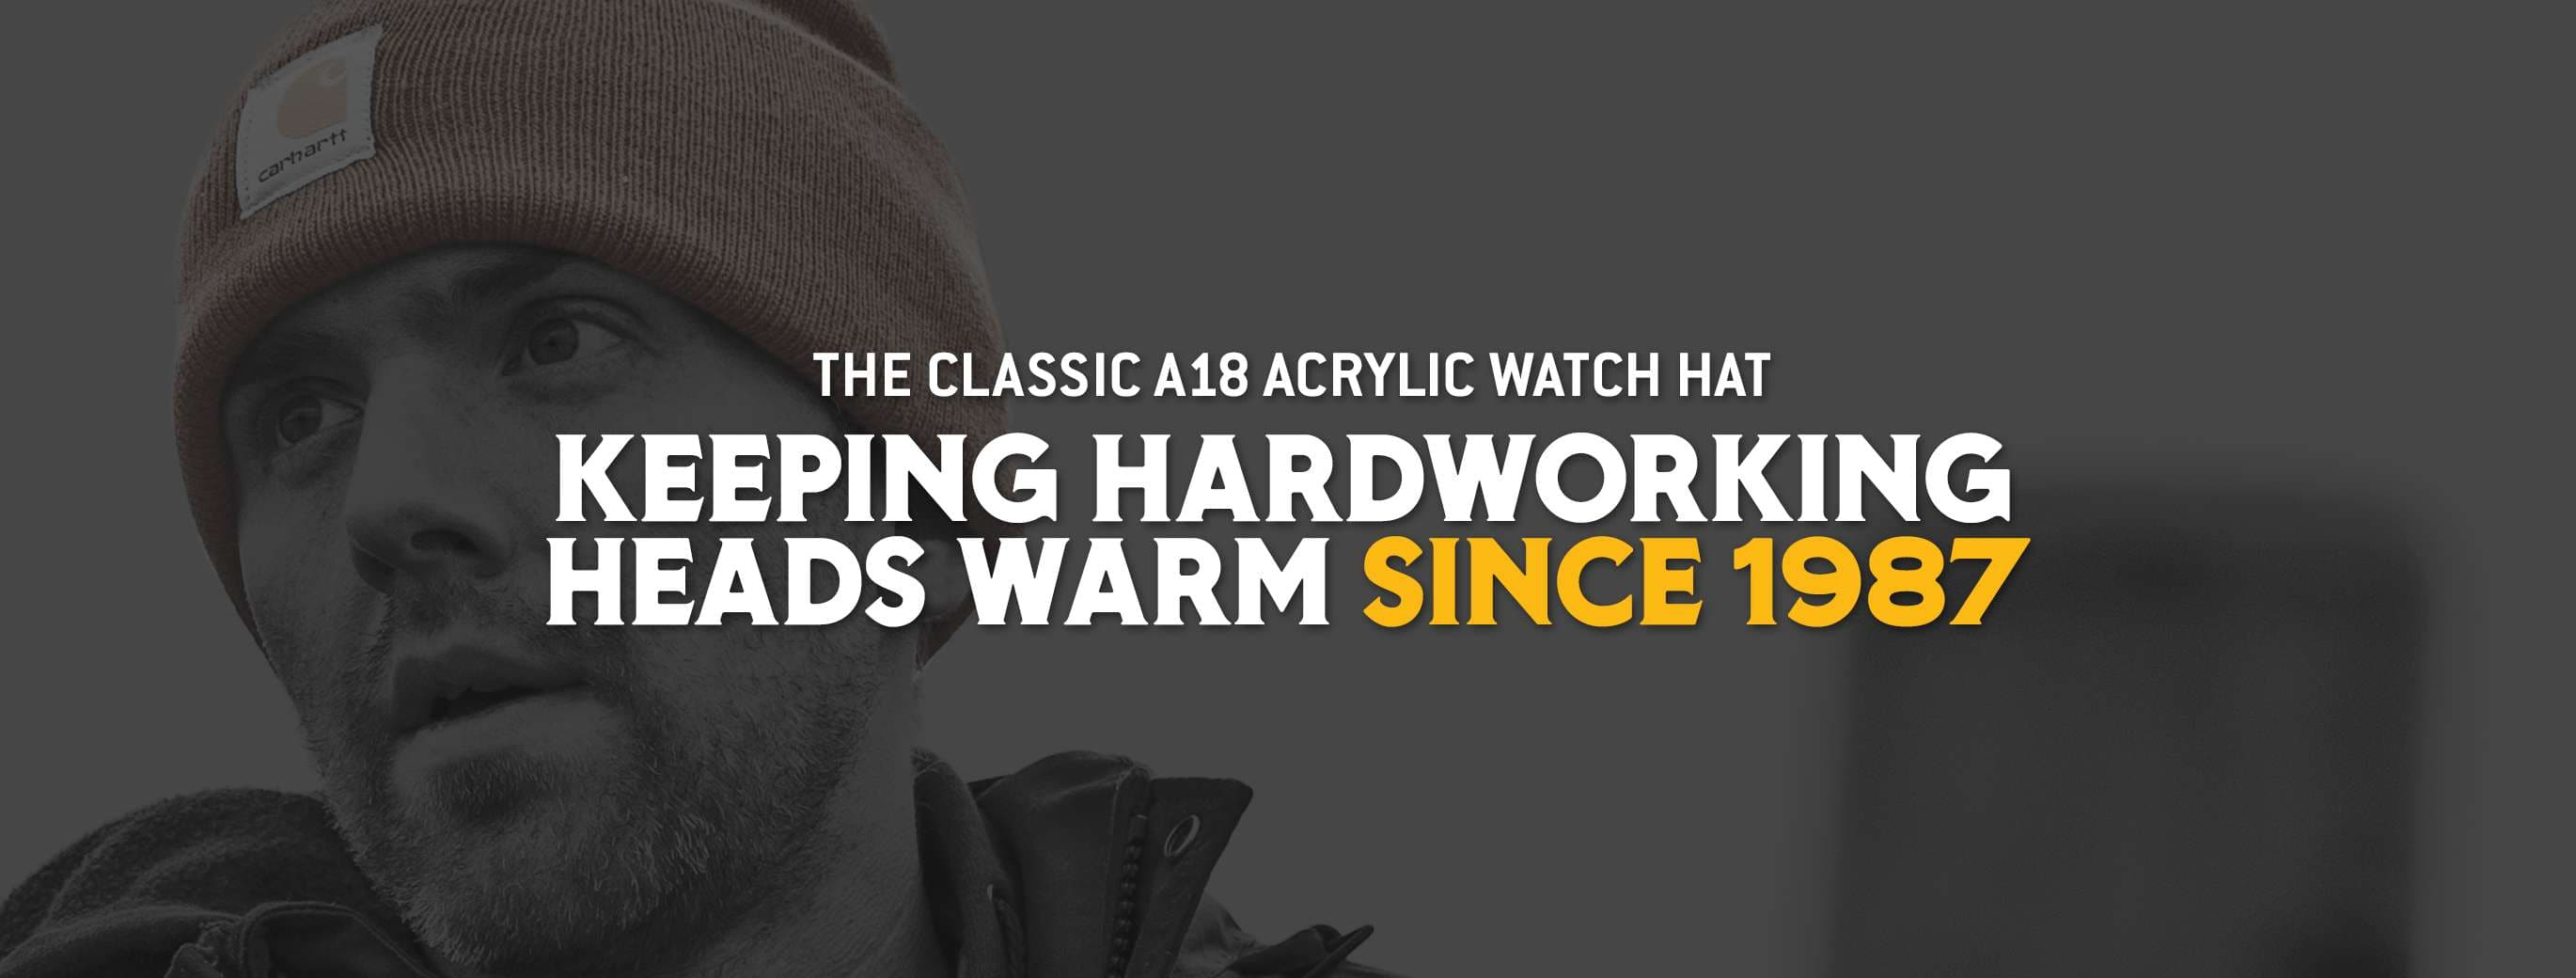 The Classic A18 Acrylic Watch Hat, Keeping Hardworking Heads Warm Since 1987